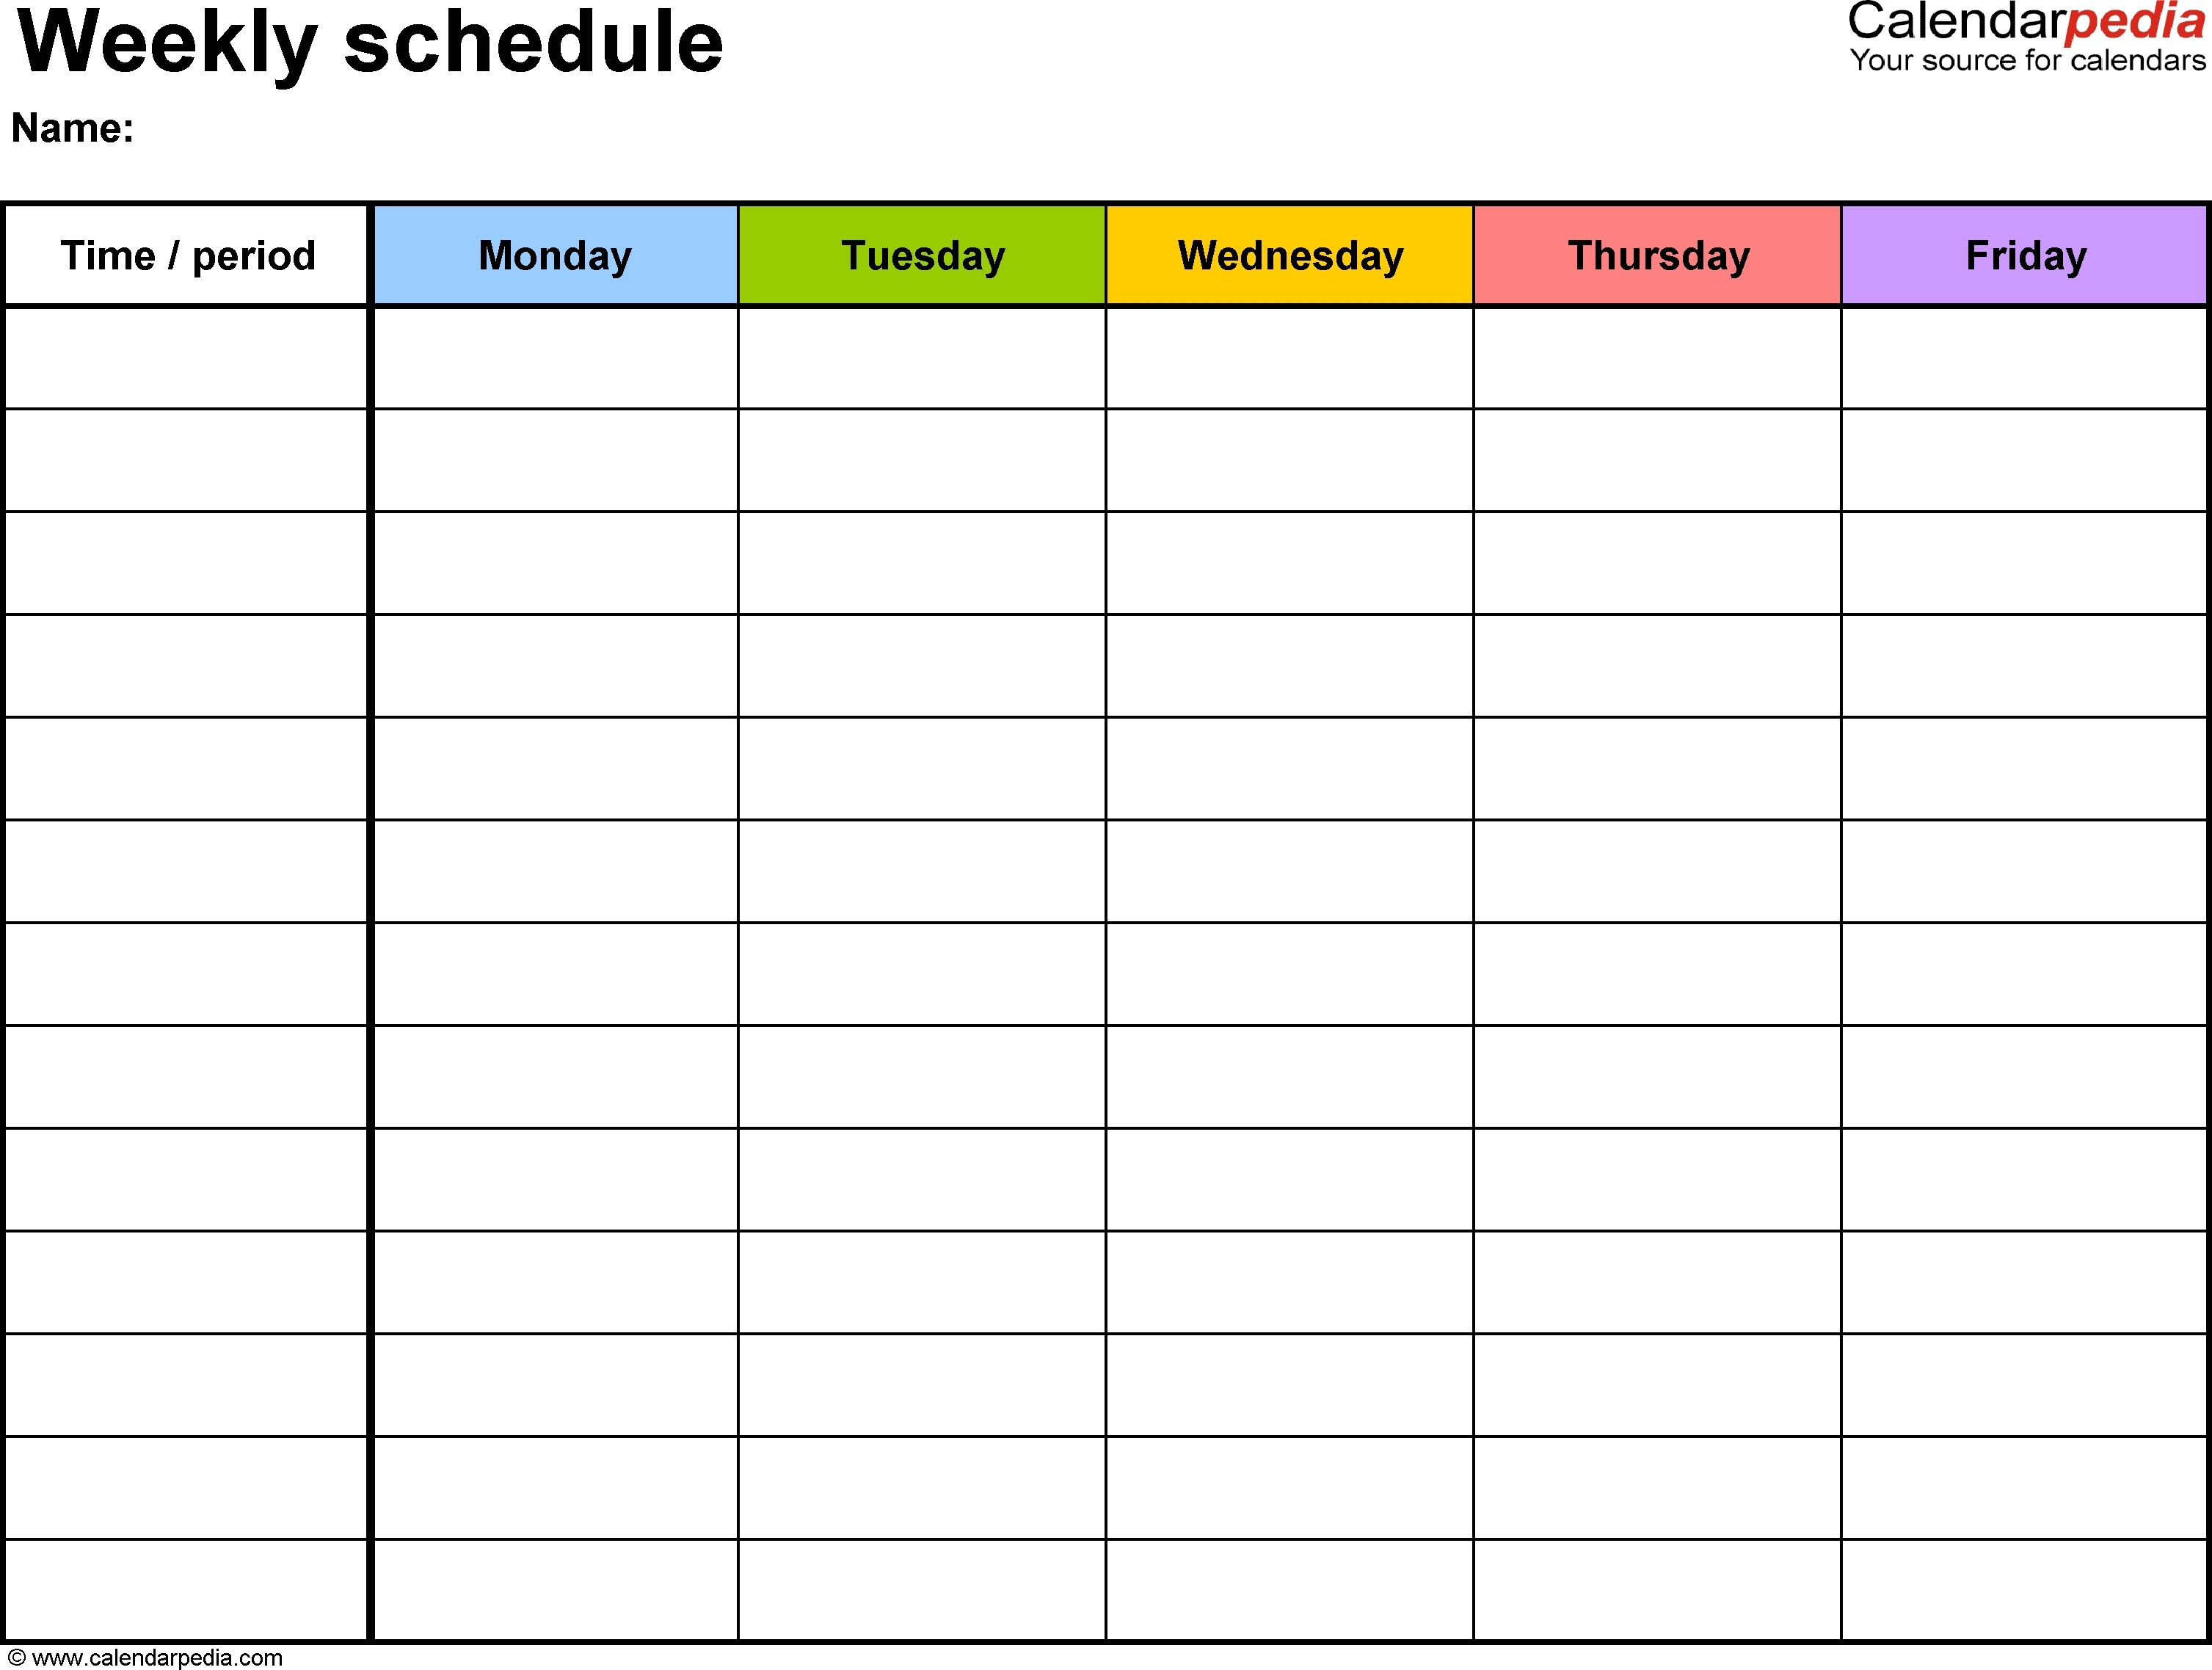 Editable Daily Calendar With Time Slots | Calendar Printing Example in Blank Daily Schedule With Time Slots